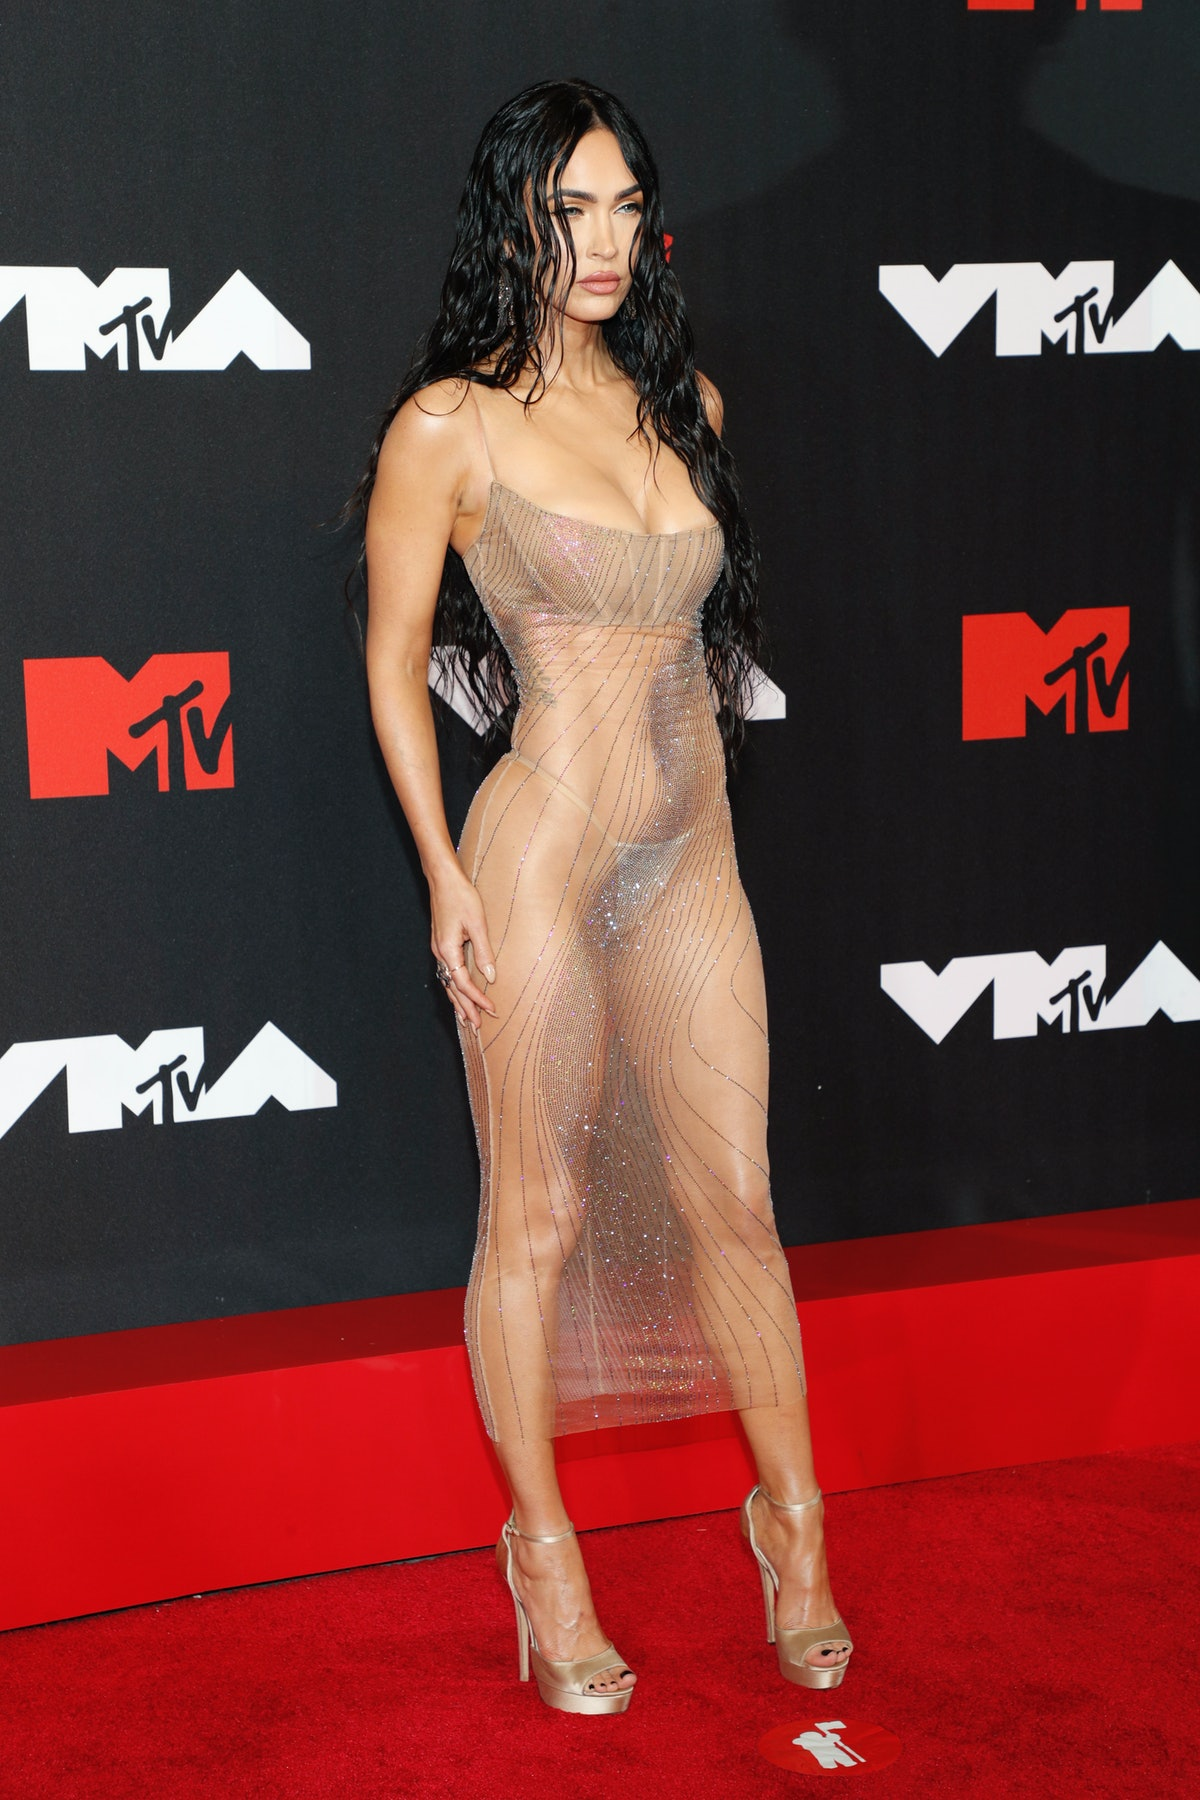 Megan Fox's 2021 VMAs dress was a nude illusion dress that was completely sheer, showing her sparkly...